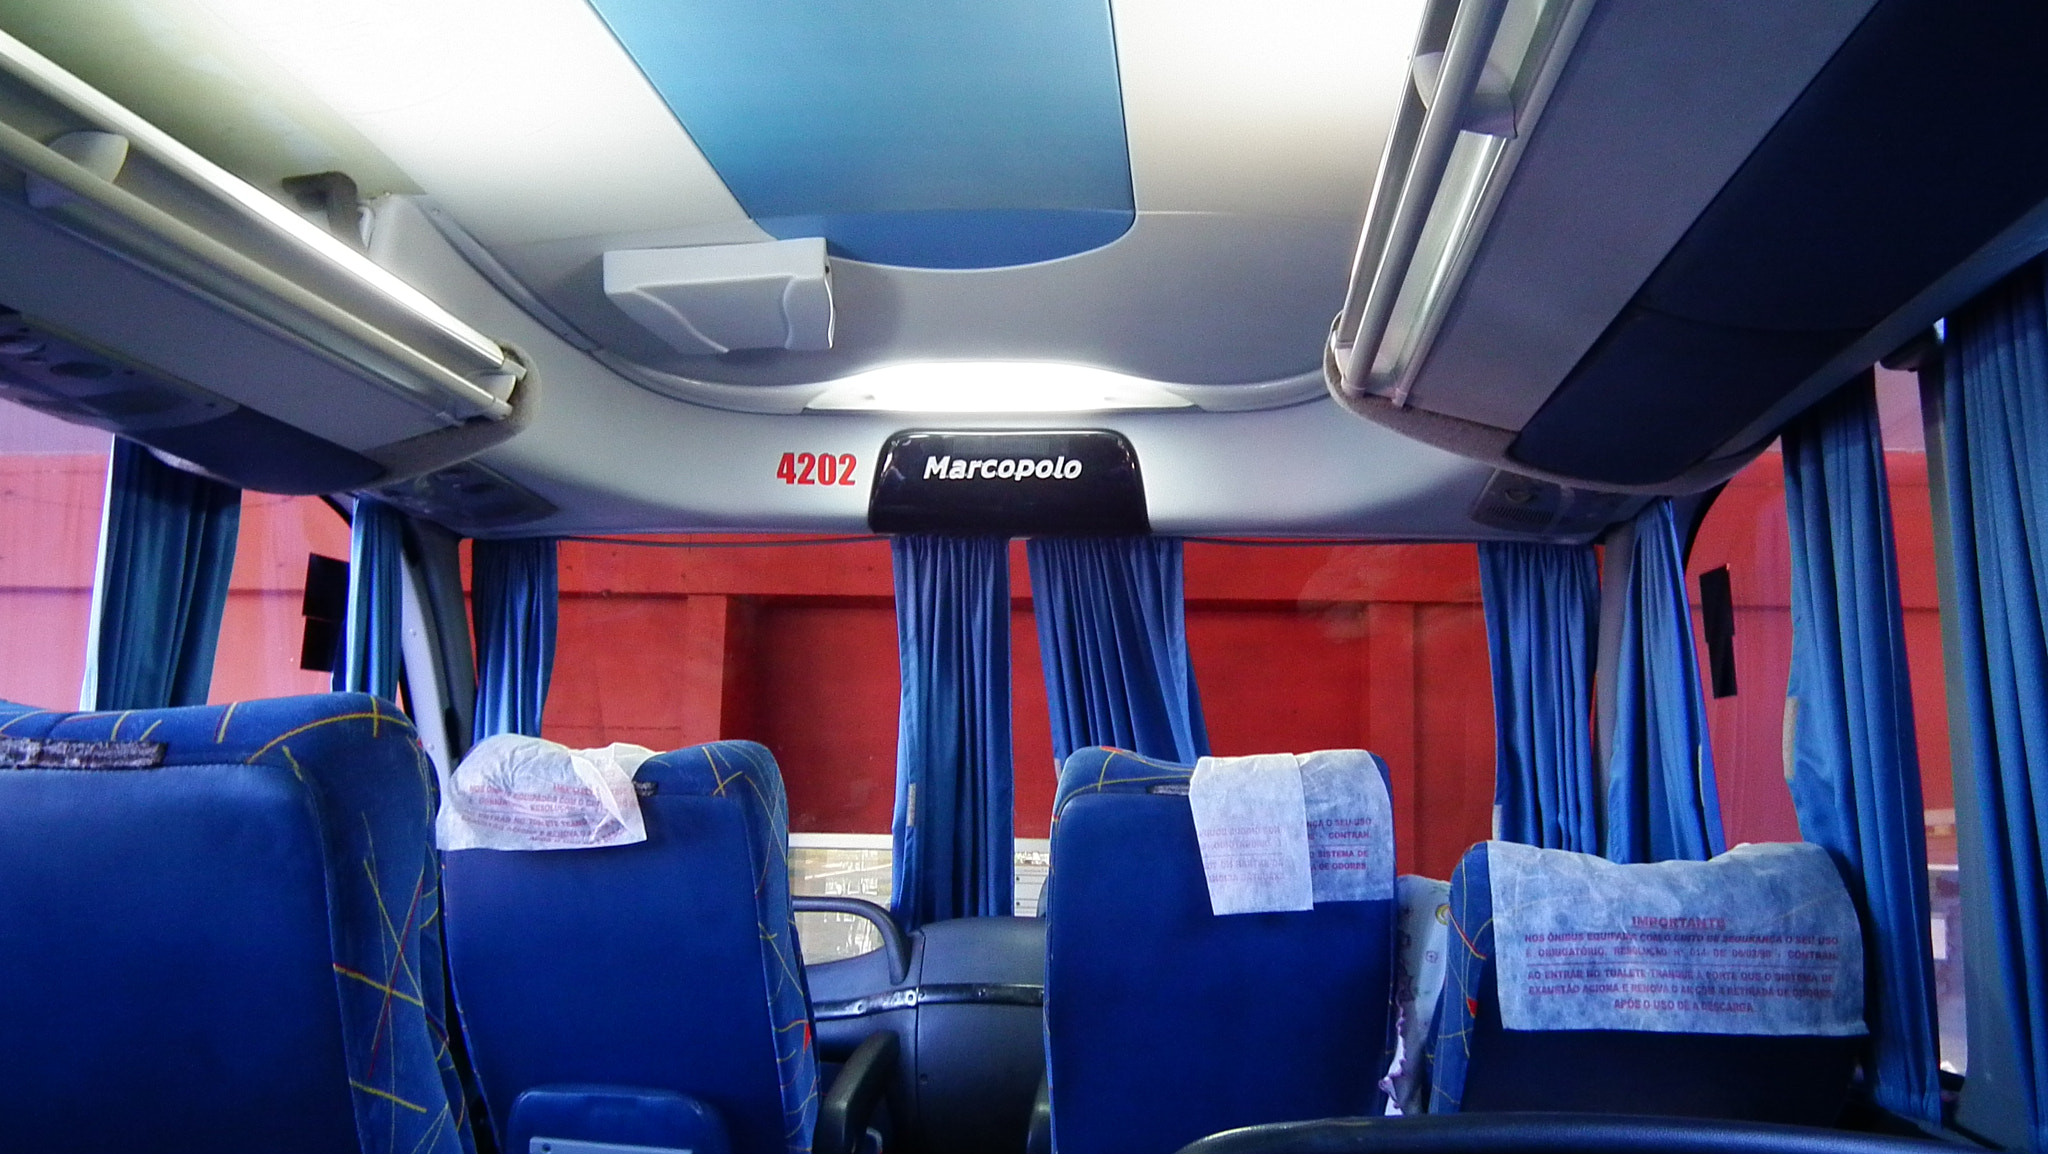 Photograph Bus in Red and Blue by Eduardo Rolim on 500px